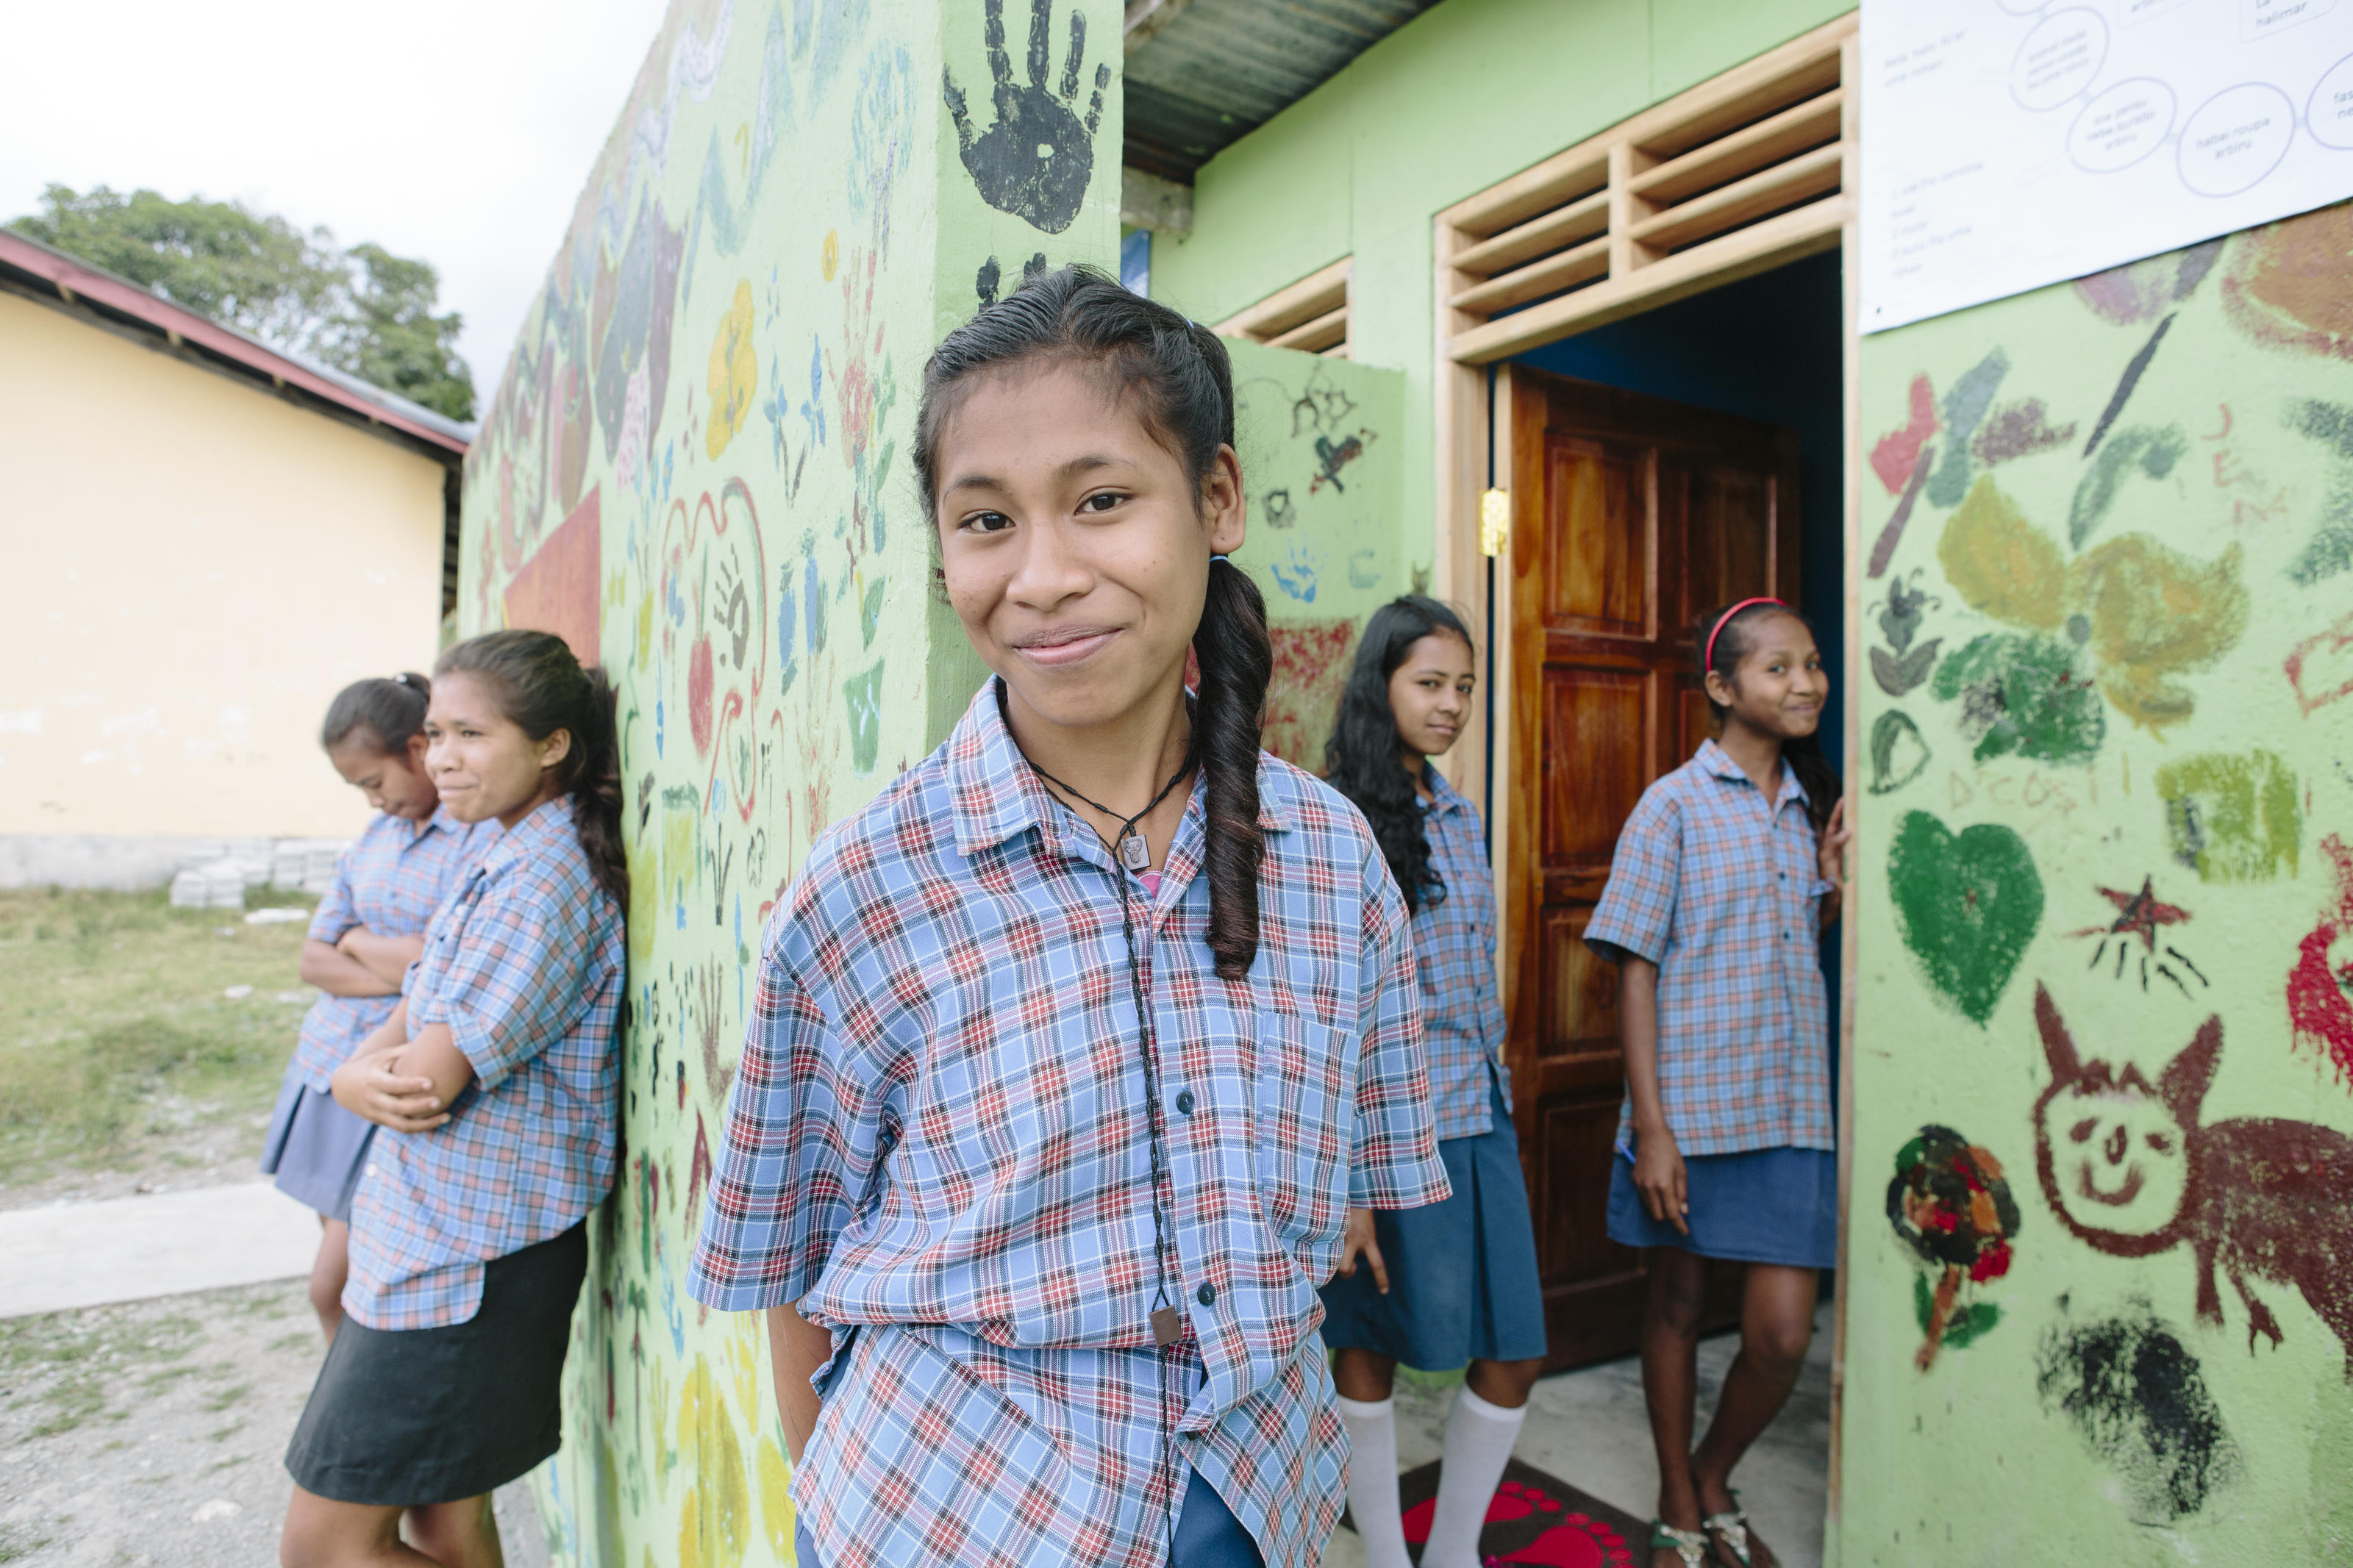 Etelvina Vita Da Costa, 15 (centre), outside the new toilet block at Ailuli Pre-Secondary School in Same, Manufahi District, Timor-Leste, 2015